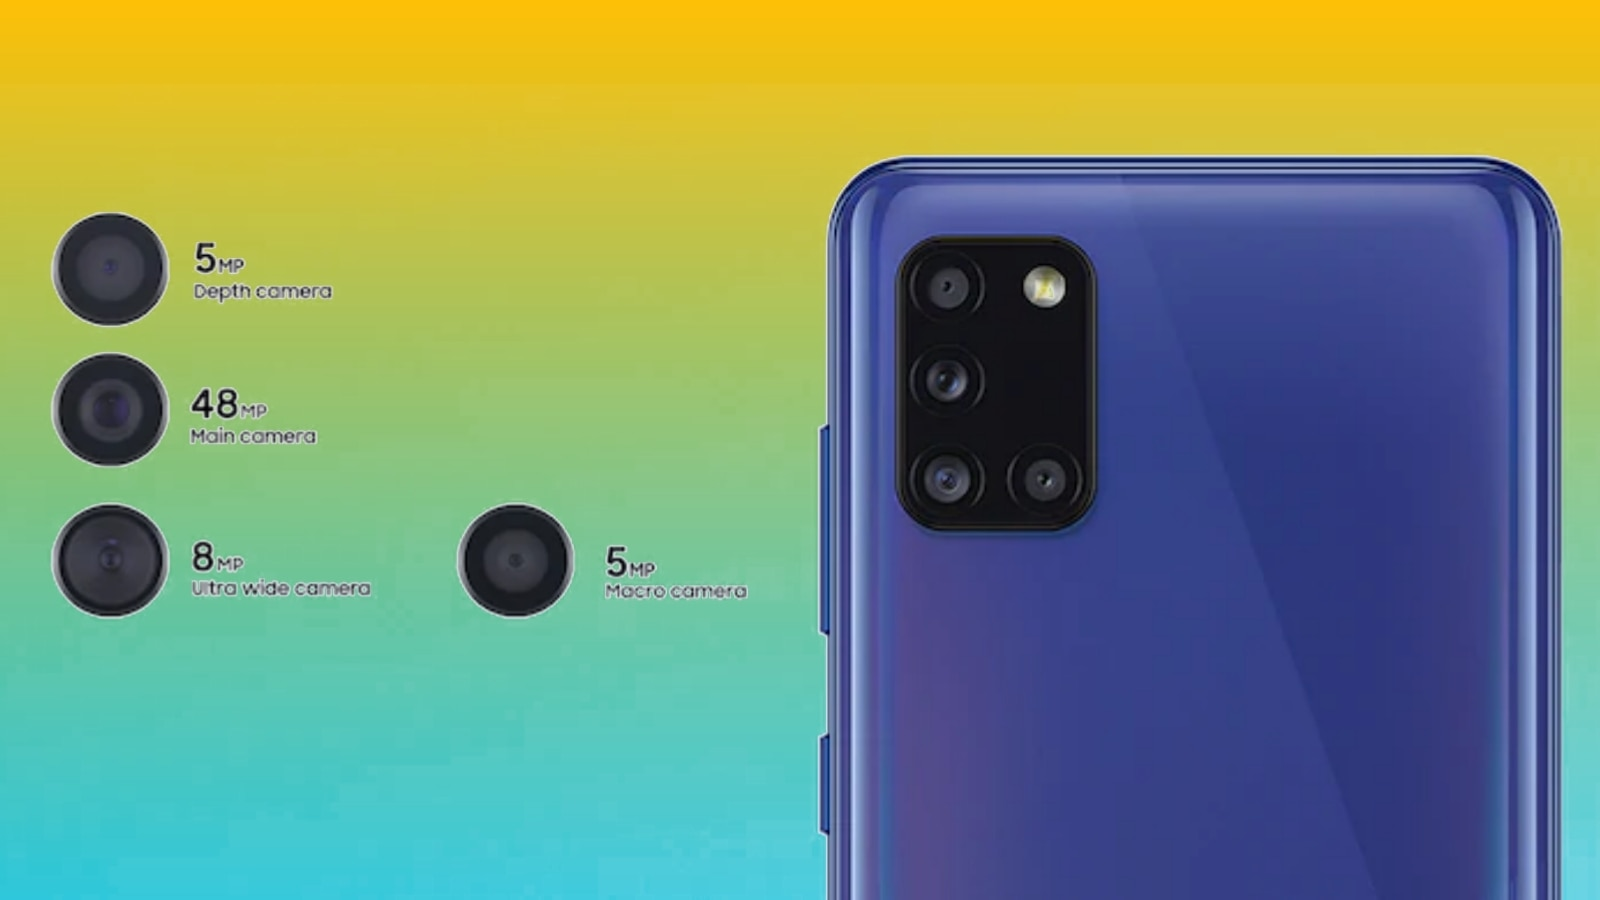 Latest Mobile Phones Reviews 2020 Smartphones Price In 2020 Samsung Galaxy A31 Review A Good Phone For The Non Gamers Out There